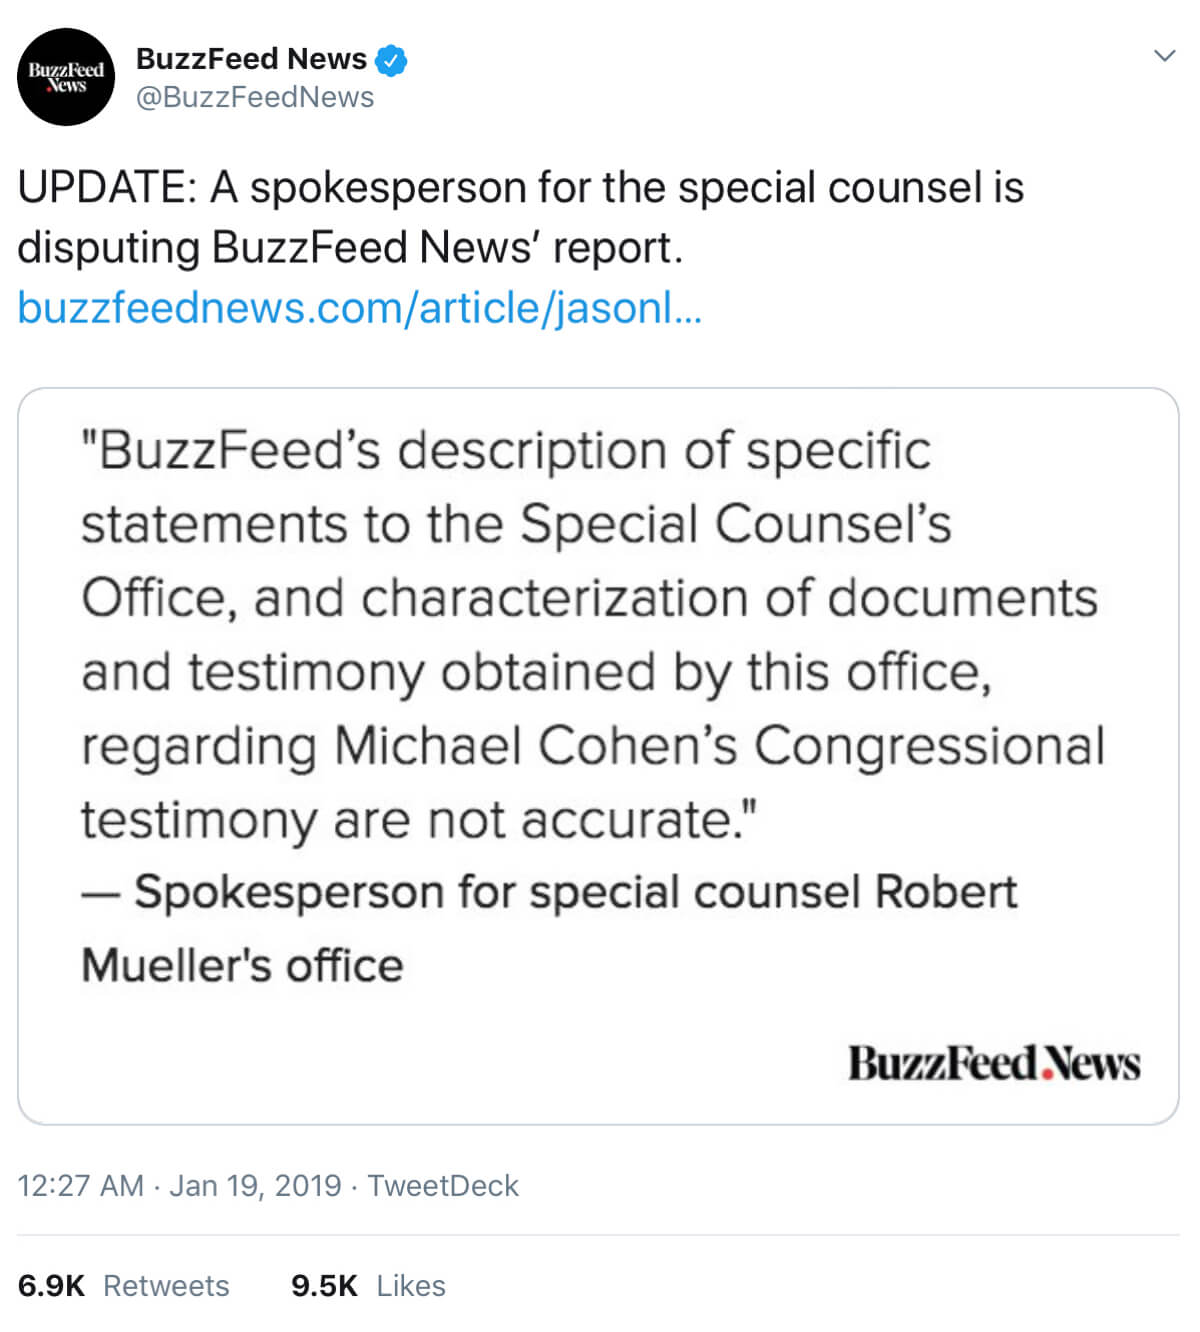 A tweet from BuzzFeed News explaining that a special spokesperson for the special counsel is disputing one of its reports.